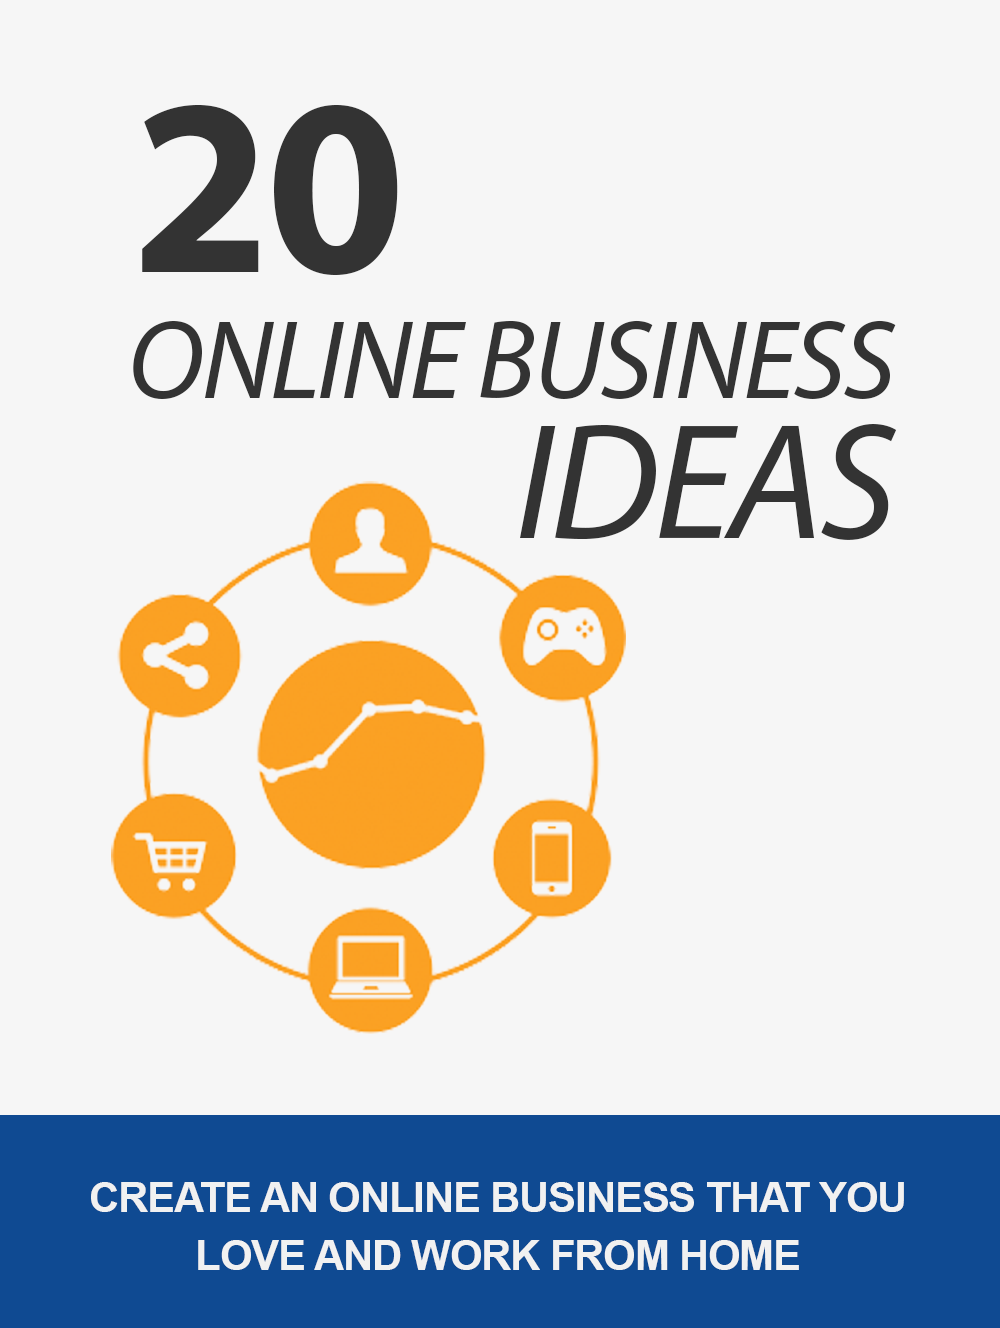 20 Online Business Ideas (Create An Online Business That You Love And Work From Home!) Ebook's Ebook Image